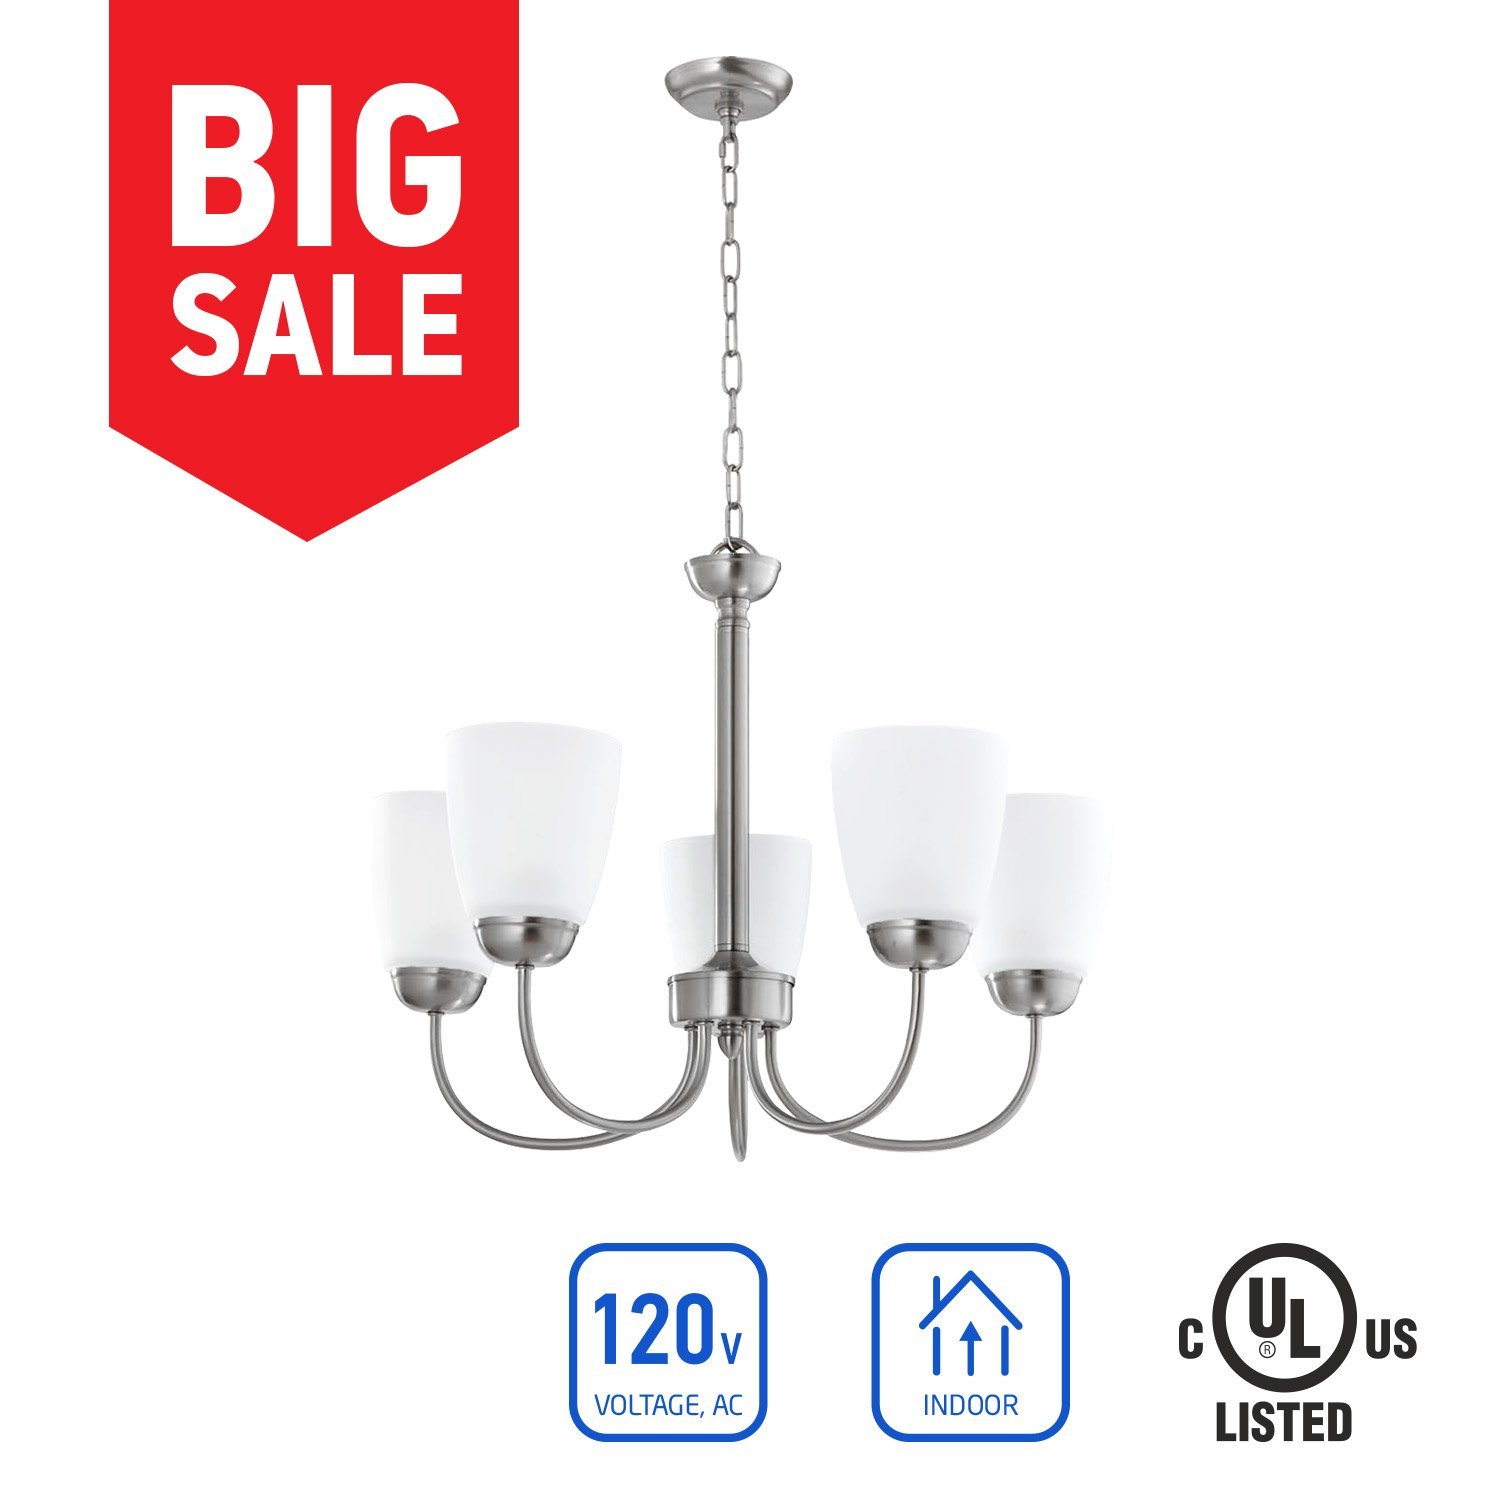 in Home 5-Light Chandelier CH39, Brushed Nickel Finish with Satin Etched Glass Shade, UL Listed